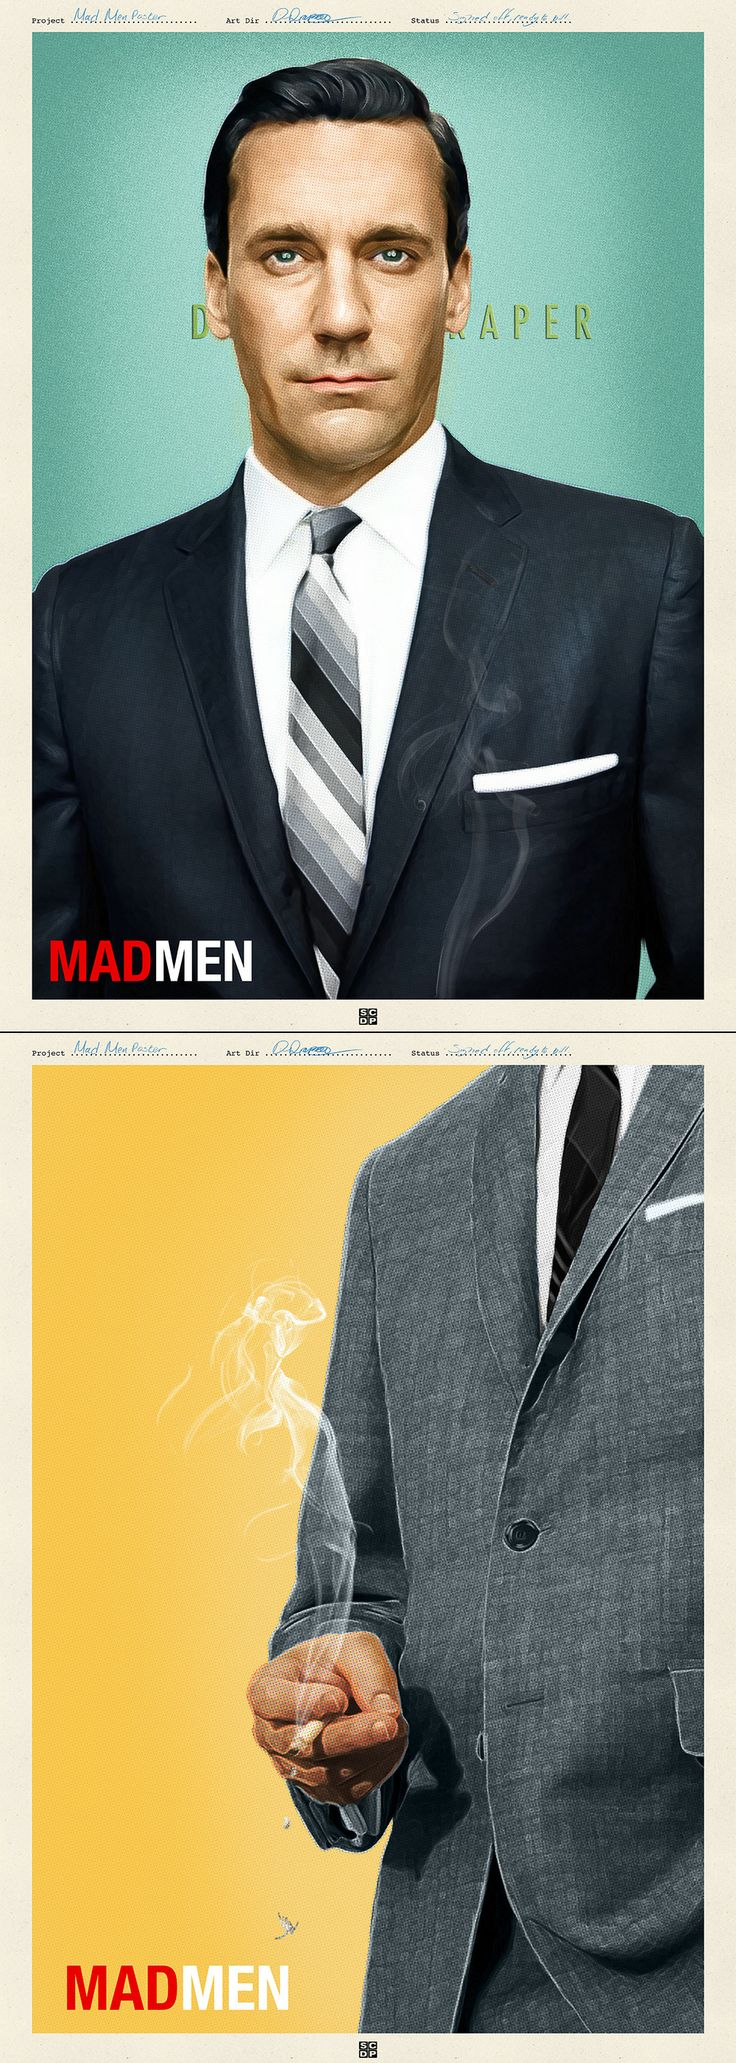 Mad Men Poster Set by Doaly http://www.doaly.co.uk/2014/01/20/mad-men-poster-set-1/ Myvideochannel: https://www.youtube.com/channel/UCxYr6CcVtLBTOOdw0s2VLjw/videos Blog: http://ttuzzz.blogspot.pt/ #MadMen #poster #design